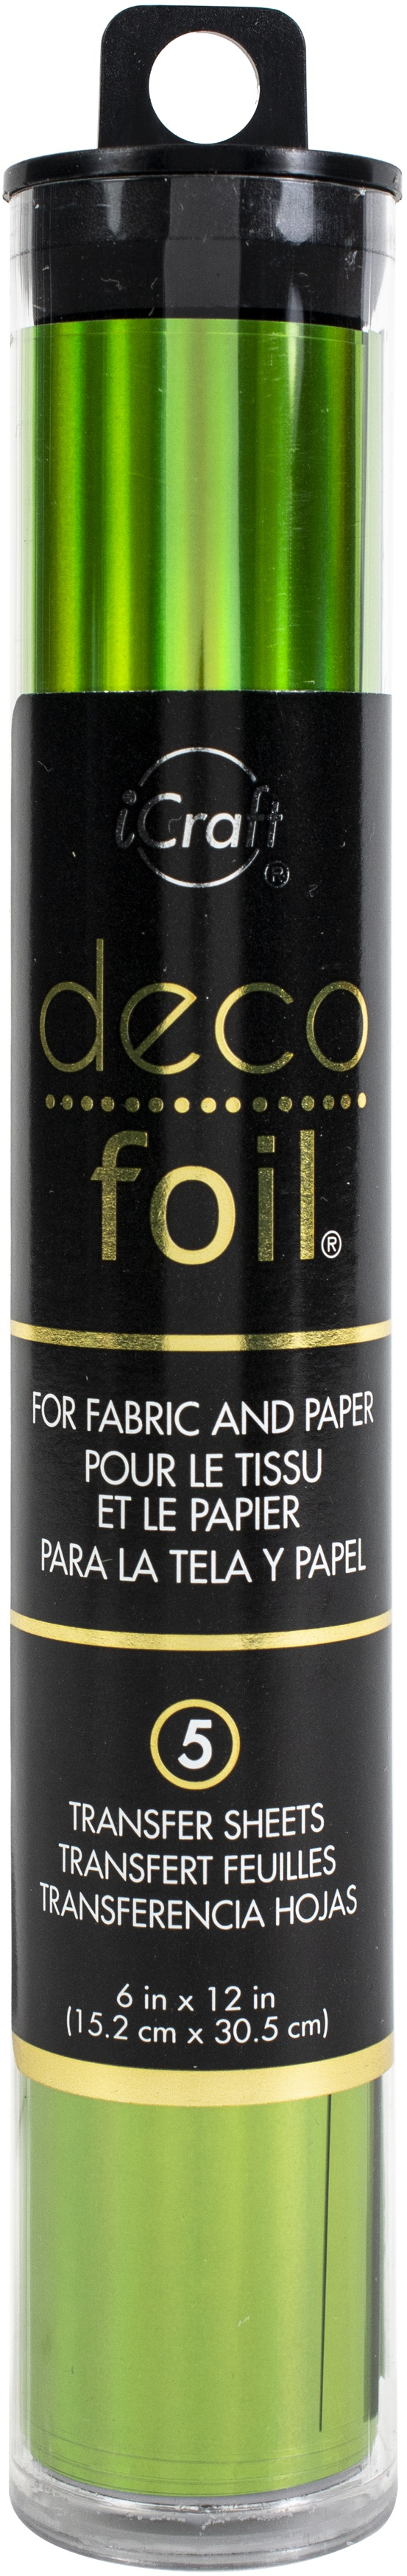 Deco Foil Specialty Transfer Sheets 6X12 5/Pkg-Lily Pad